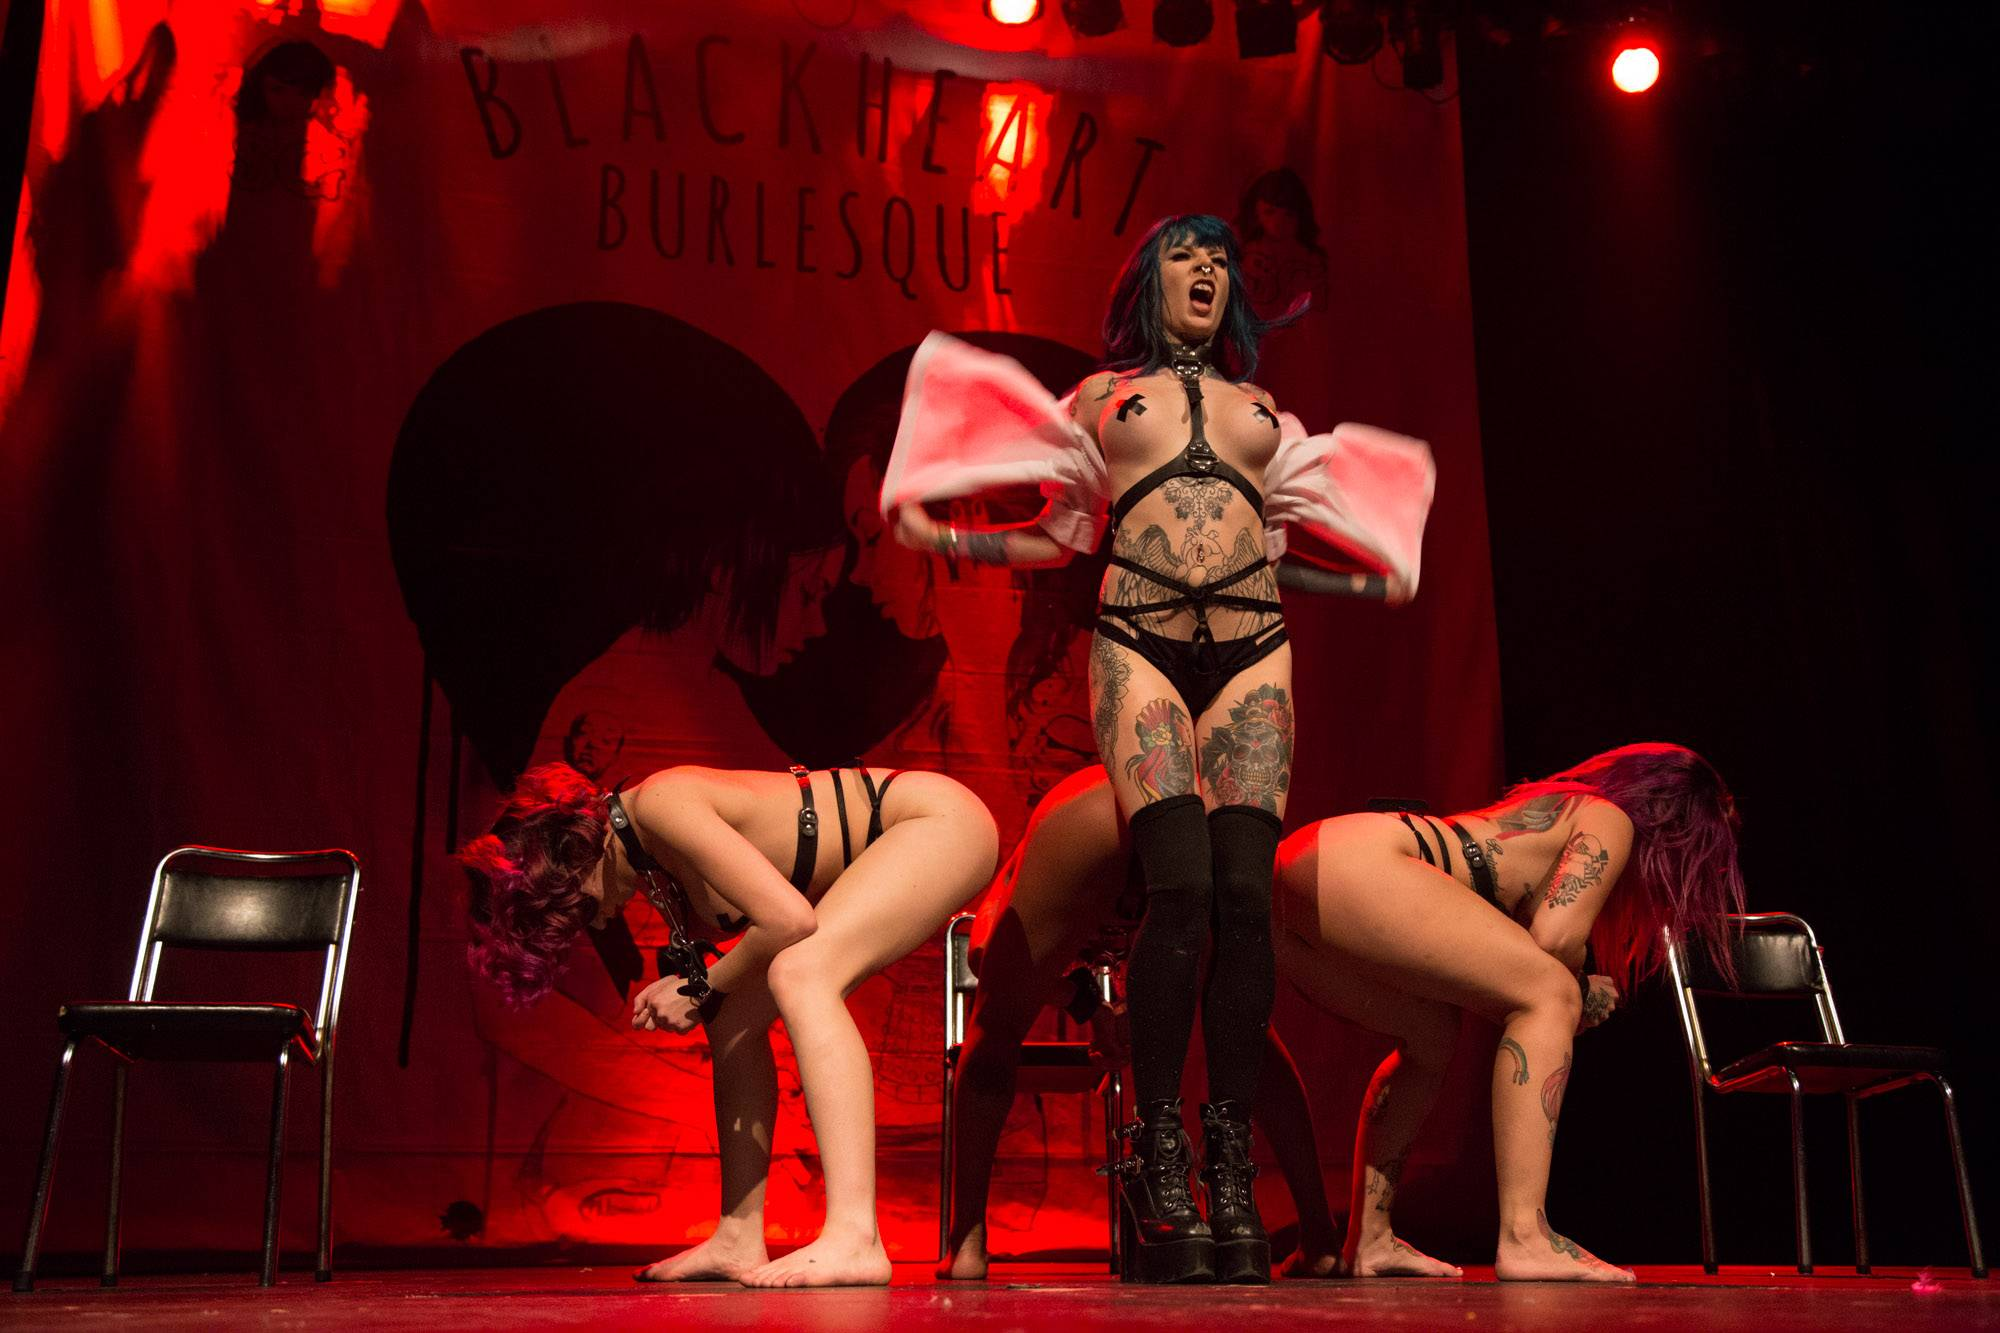 Suicide Girls Blackheart Burlesque at the Vogue Theatre, Vancouver, Apr. 26 2016. Kirk Chantraine photo.